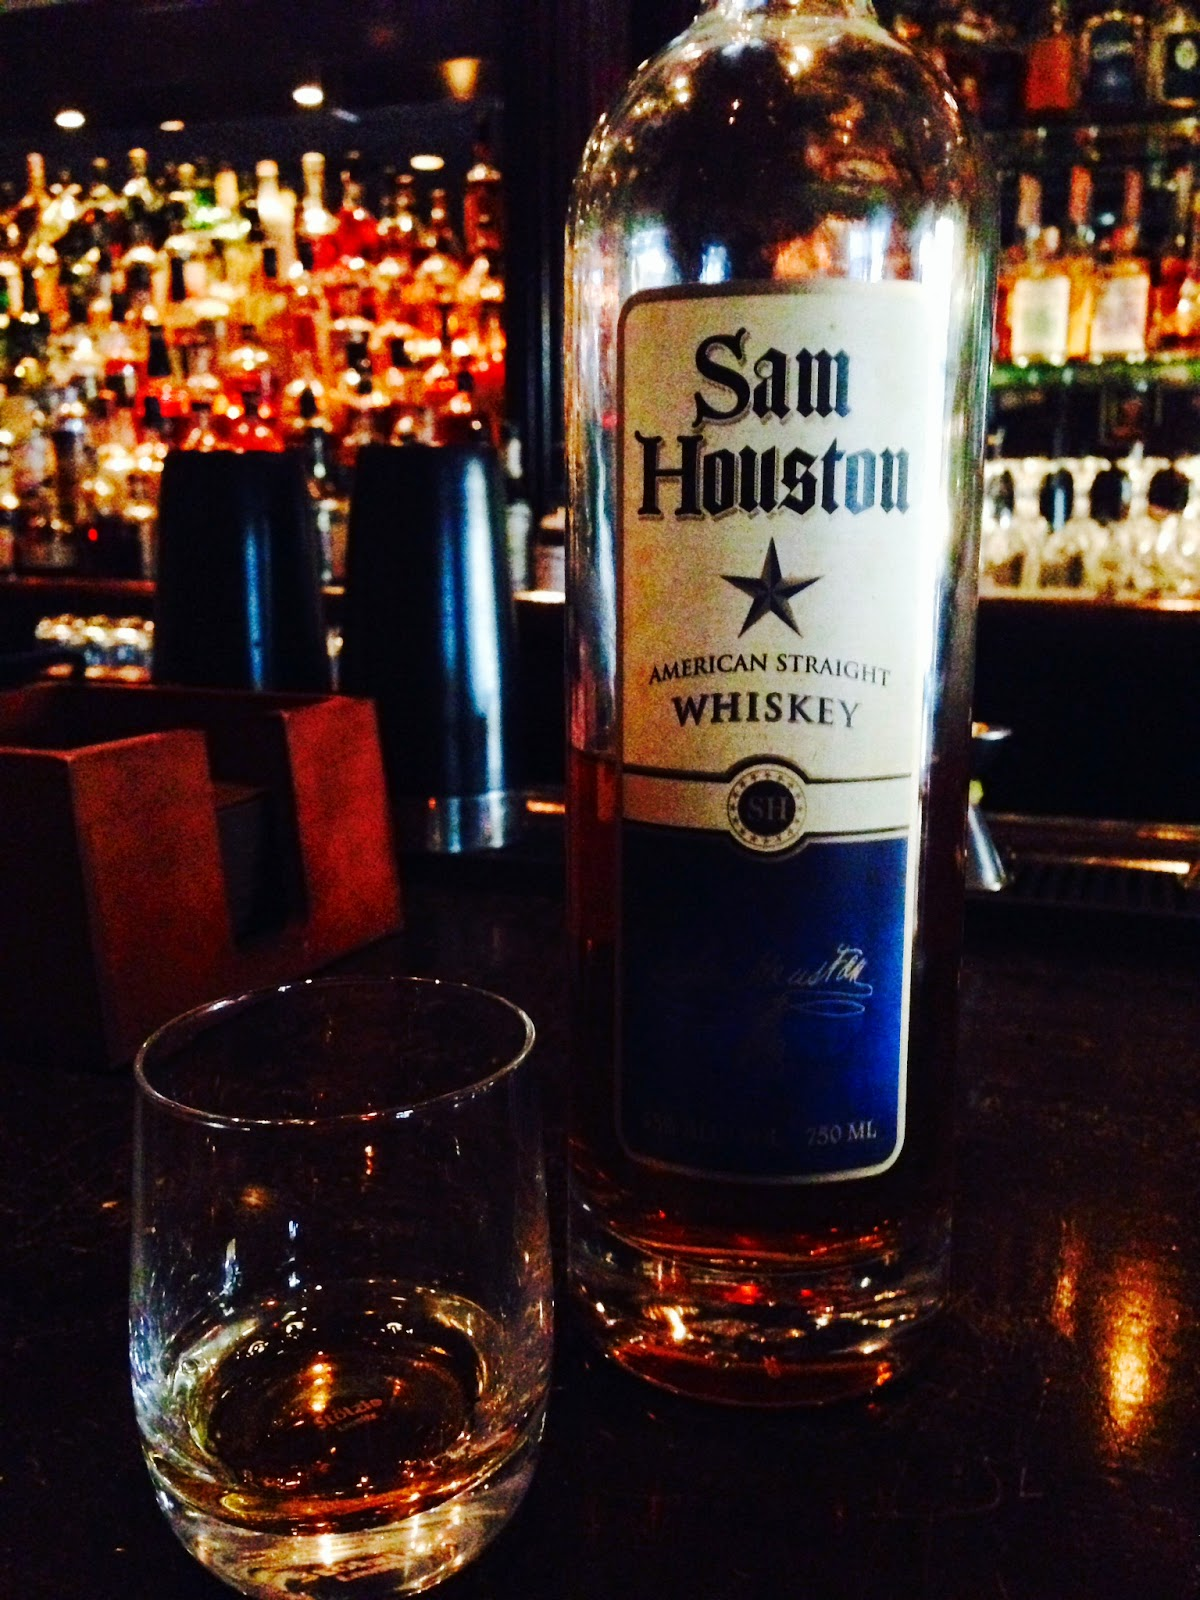 Sam Houston American Whiskey